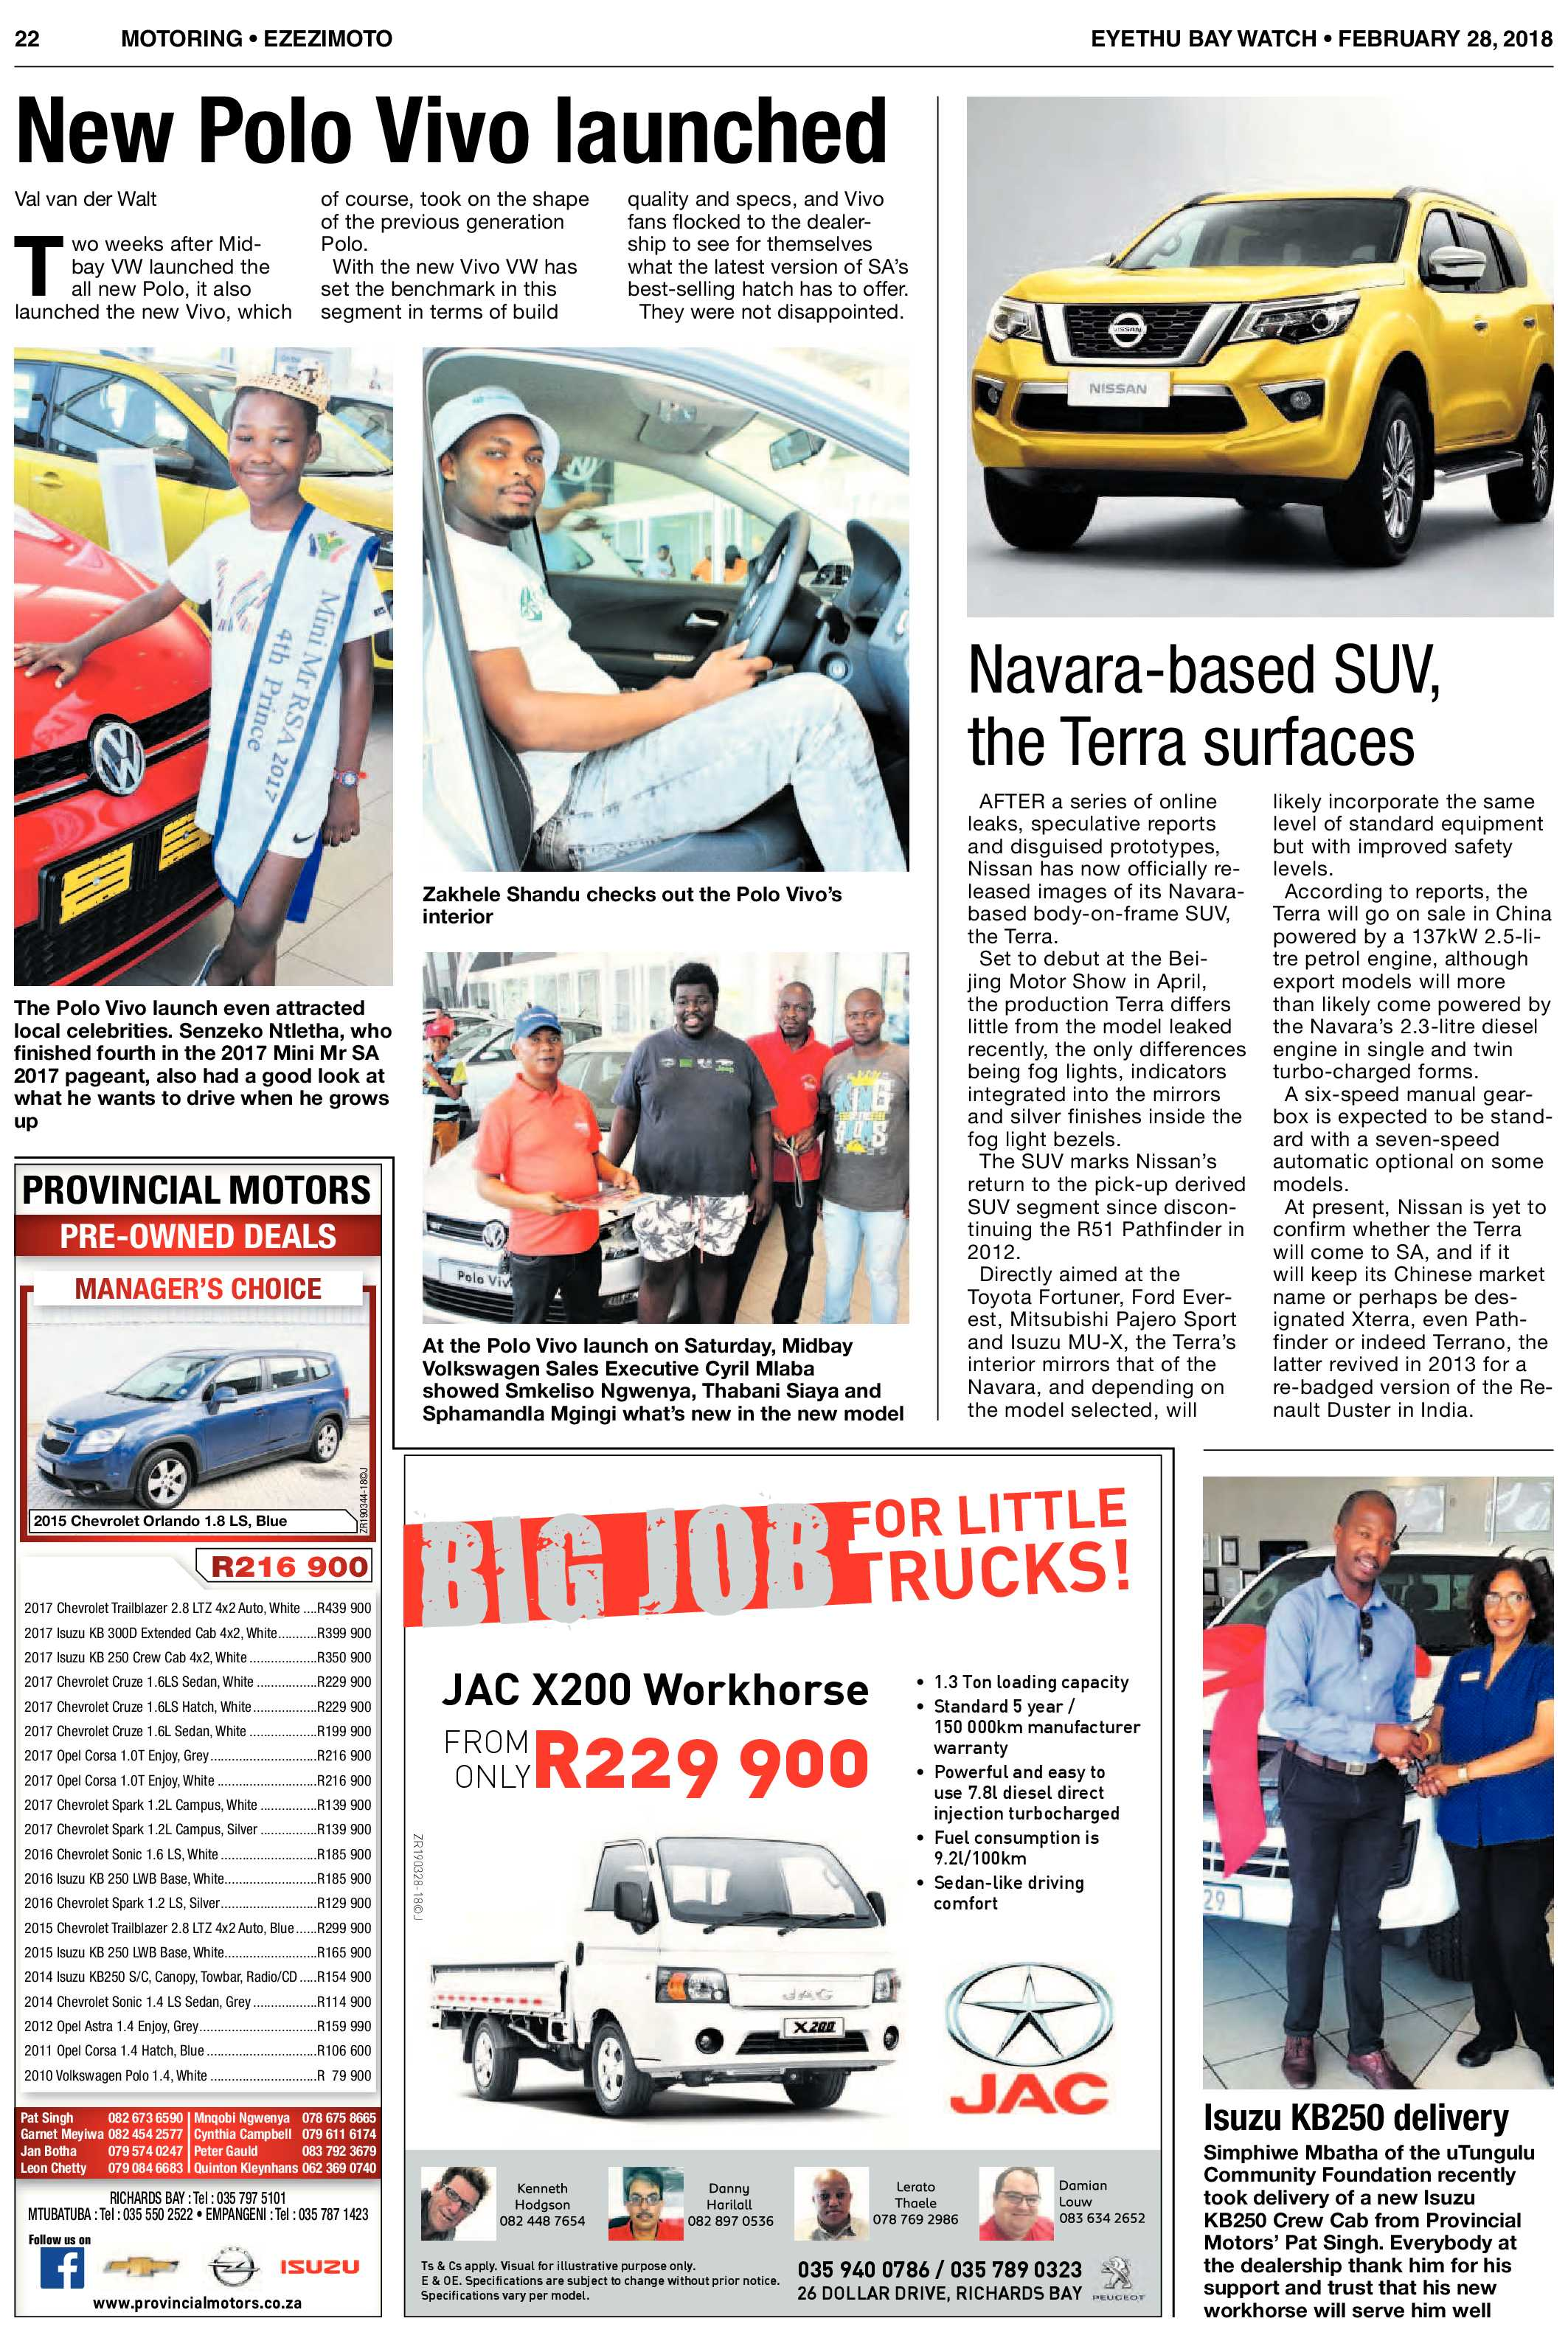 eyethu-baywatch-07-march-epapers-page-22